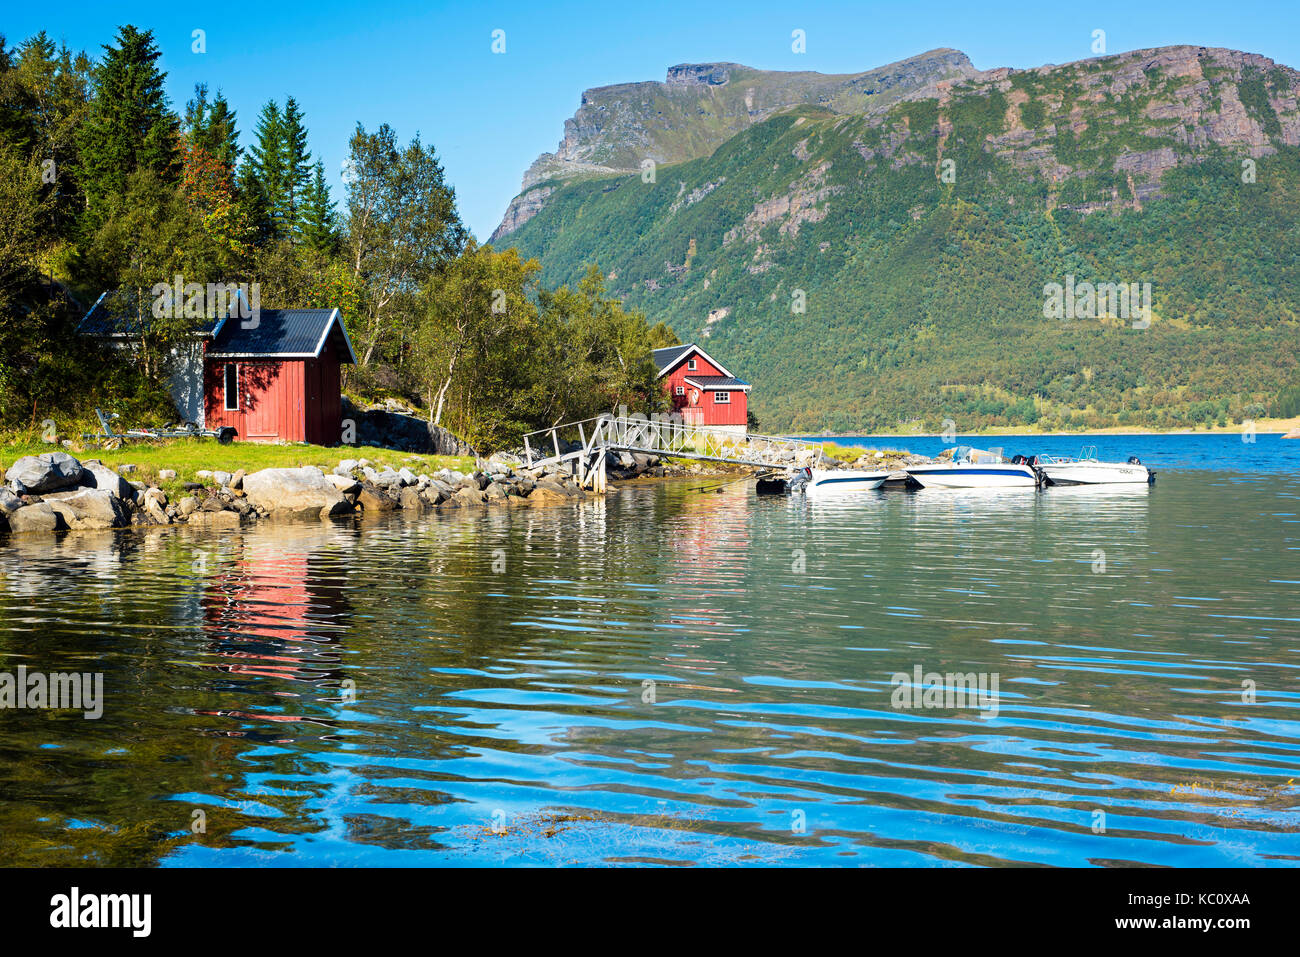 Kystriksveien - the coastal route along the Nordland coastline in Norway. This is of Hanbogen, Gildeskål. - Stock Image